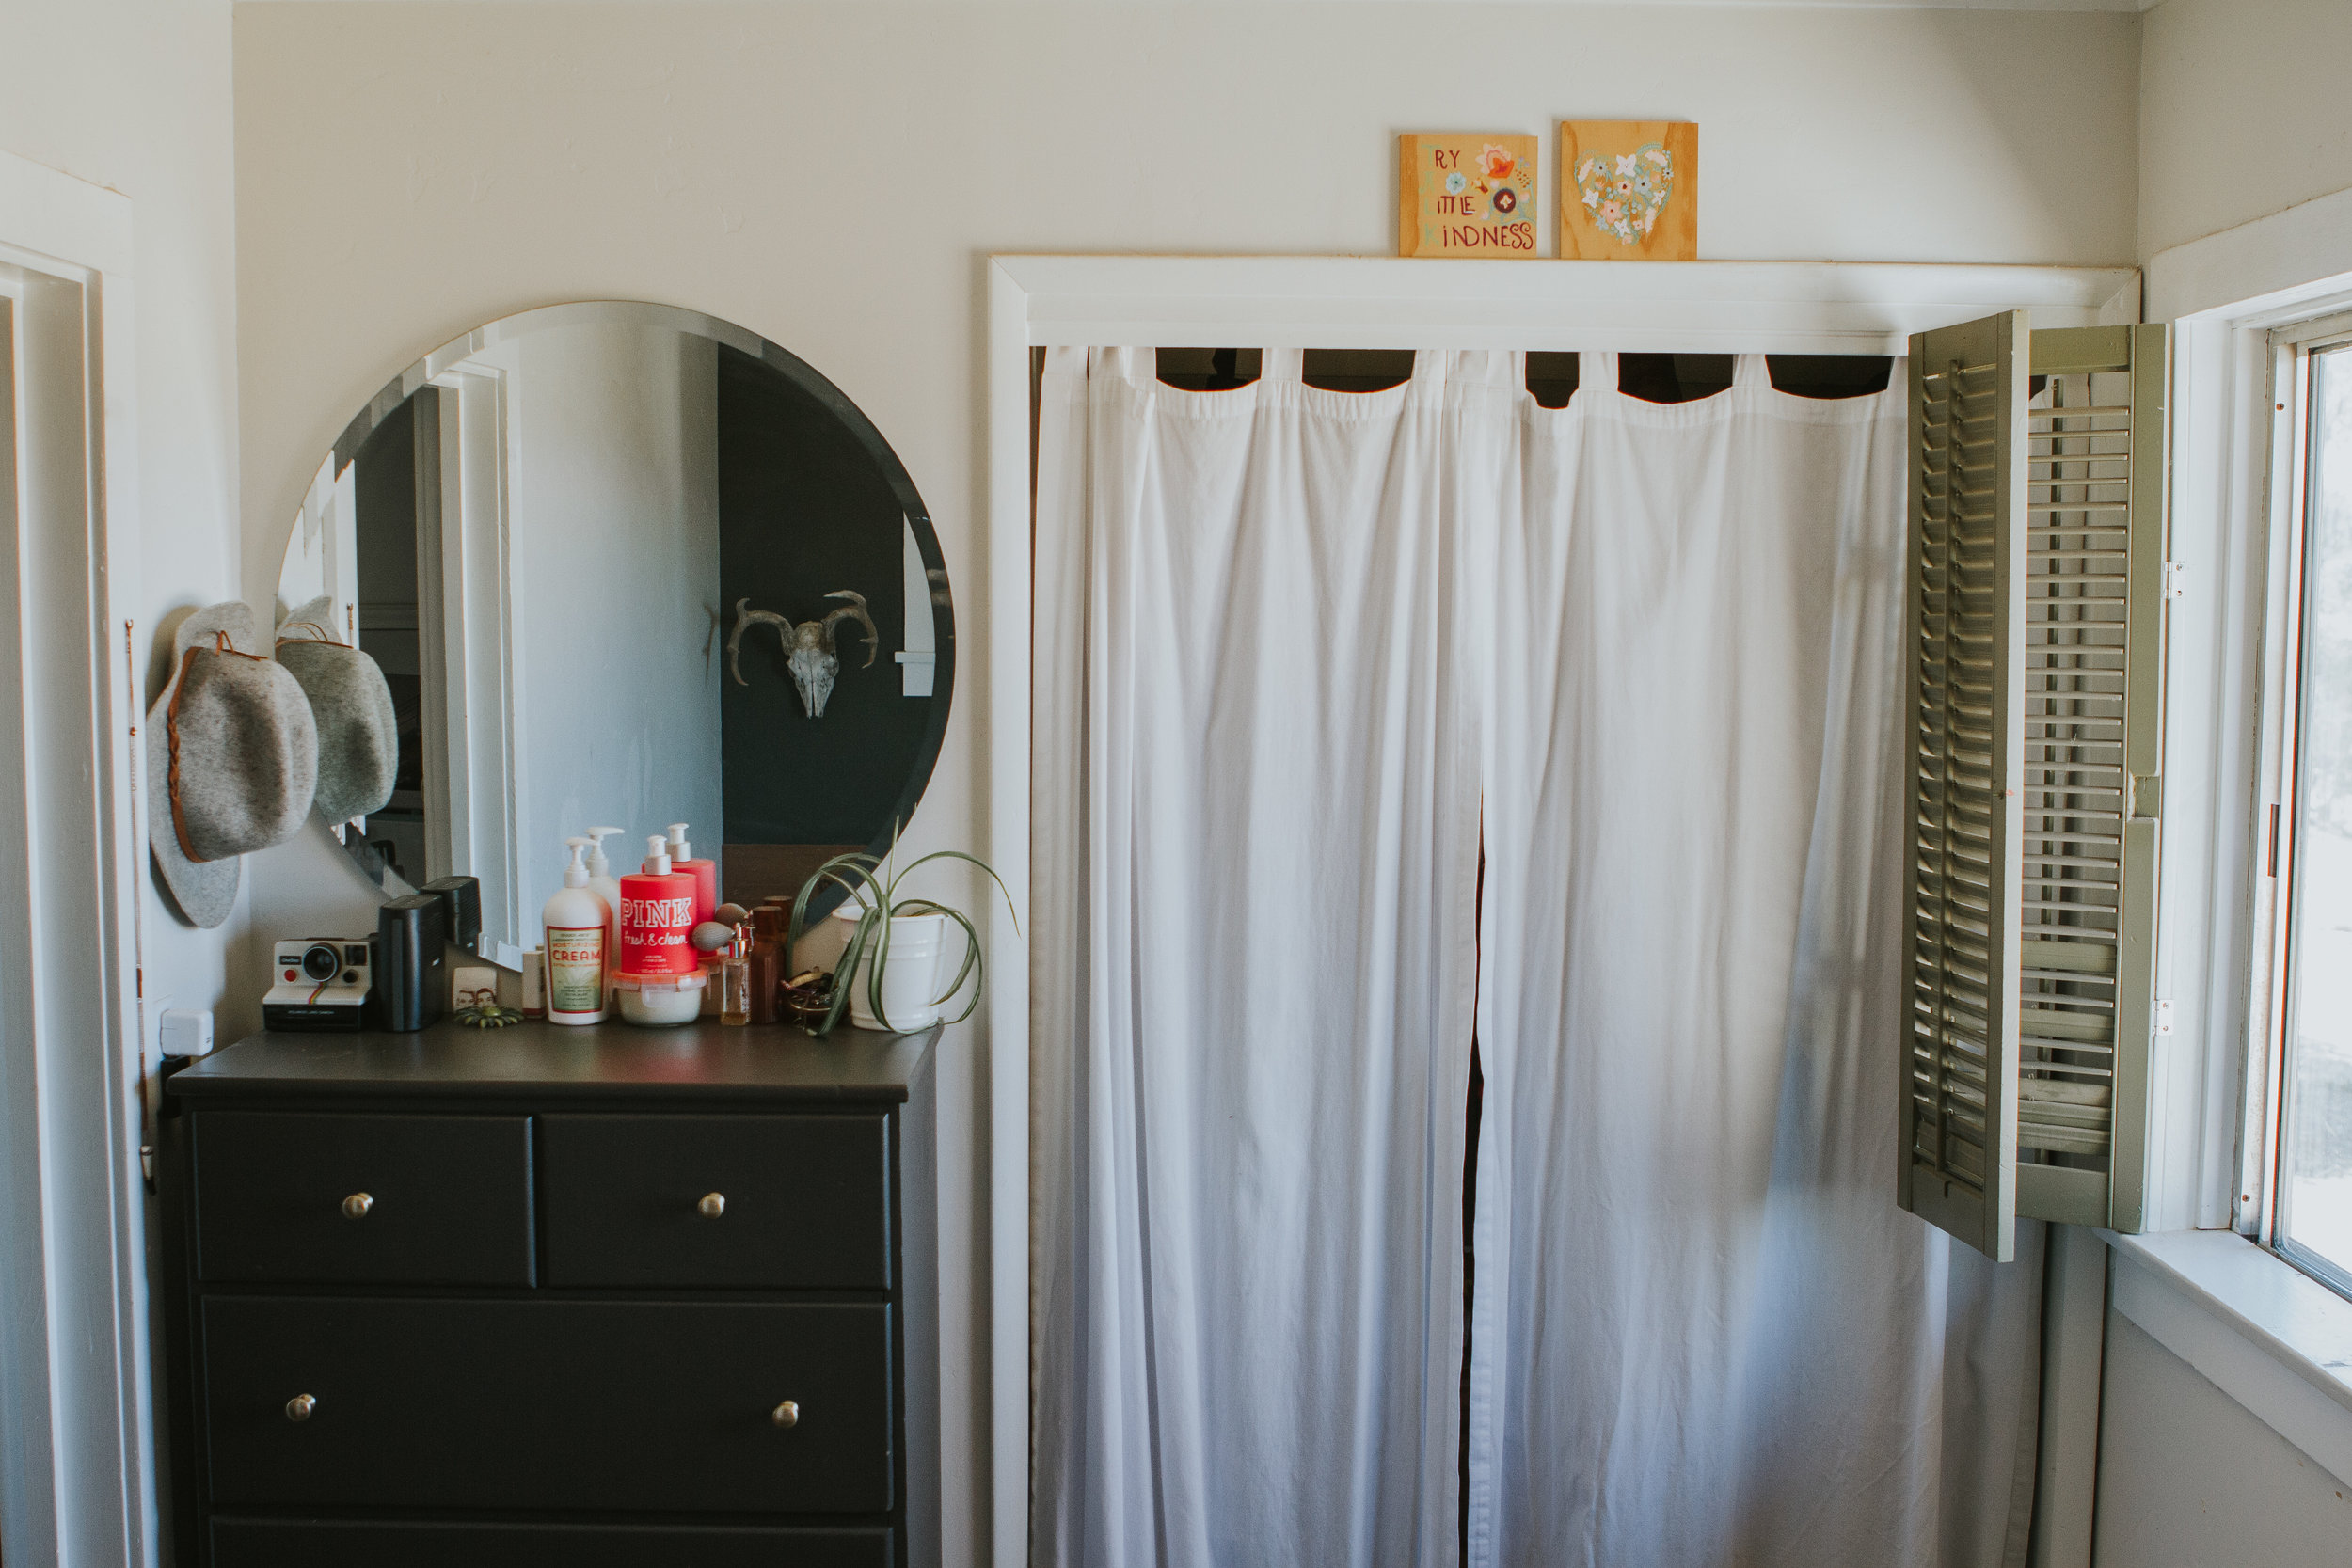 We replaced the closet doors with curtains to make it look a little less confined.